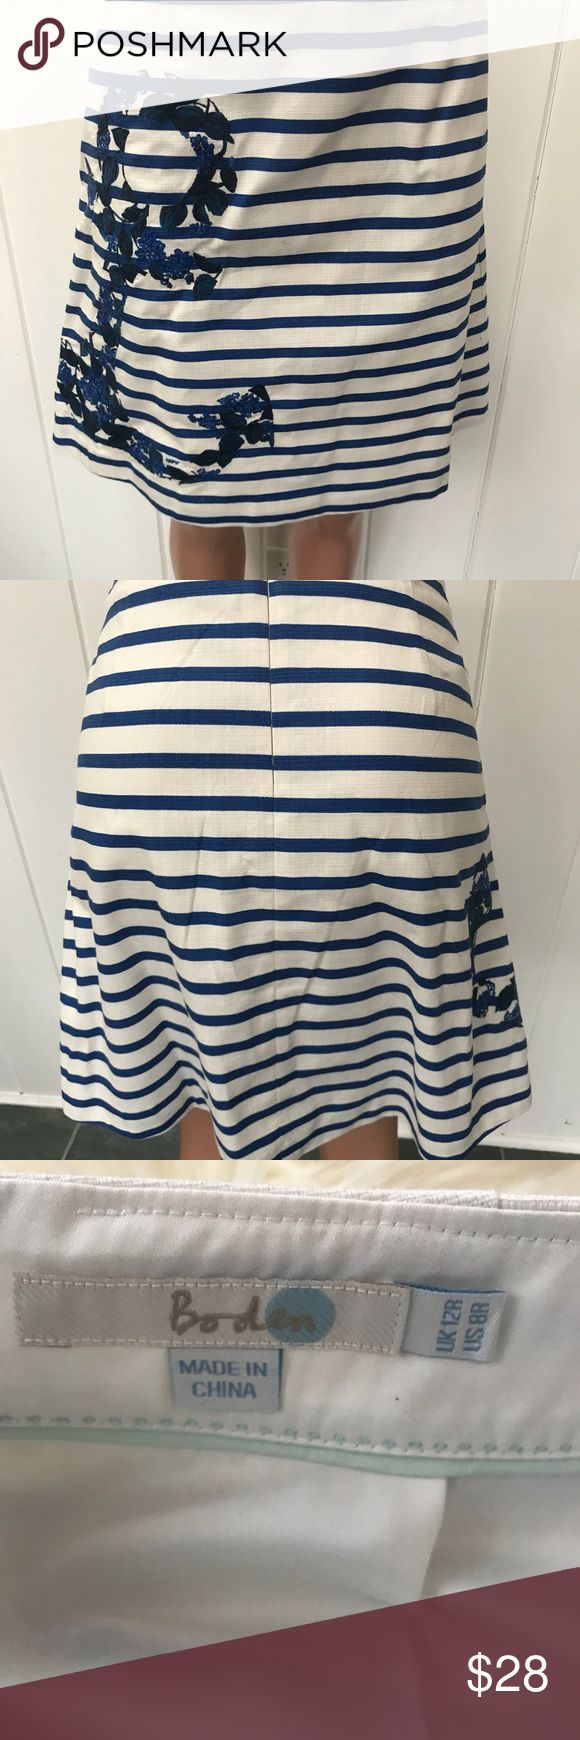 """Nautical skirt by Boden Very cute nautical skirt in size 8.  The skirt is 20.5 """" long  The waist is 31"""". Cute anchor on the front. Fully lined. Boden Skirts"""